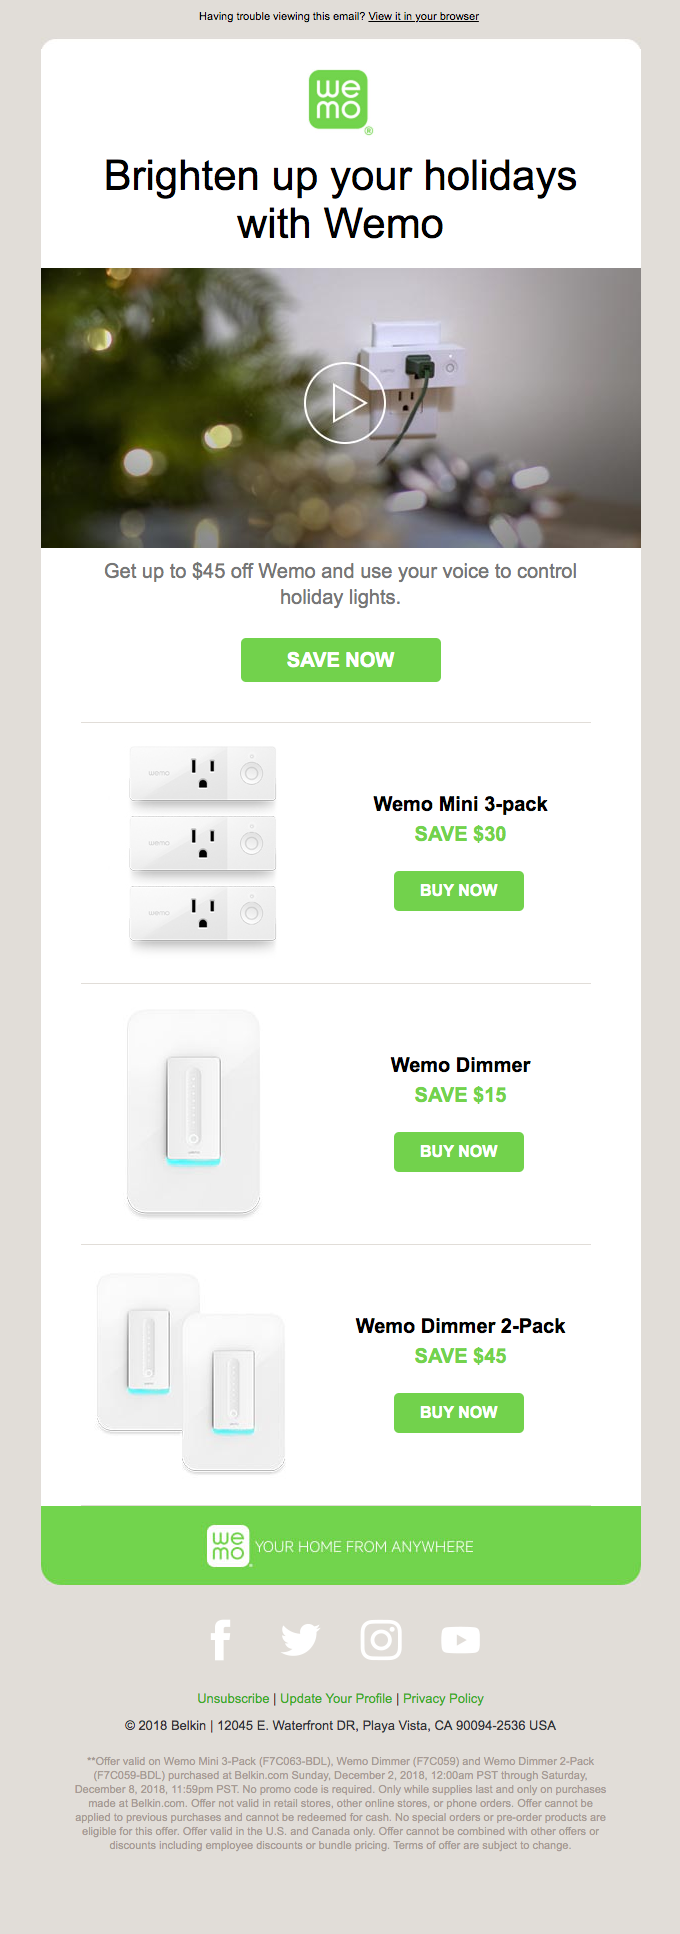 Holiday savings up to $45 off Wemo.